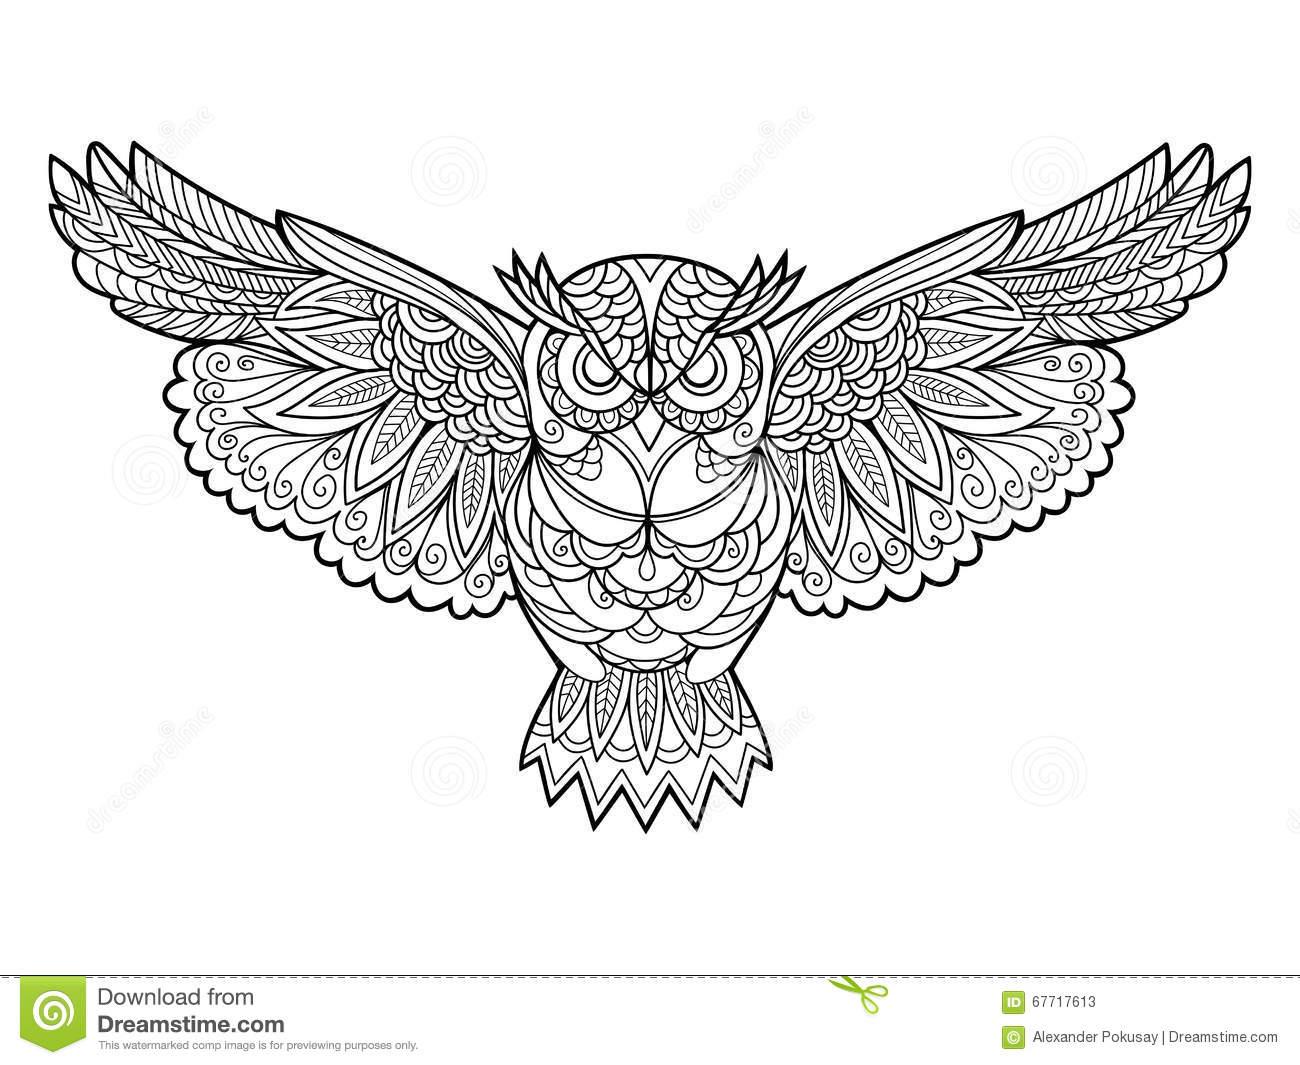 Favoriete Owl Coloring Book For Adults Vector Stock Vector - Illustration of @BE38